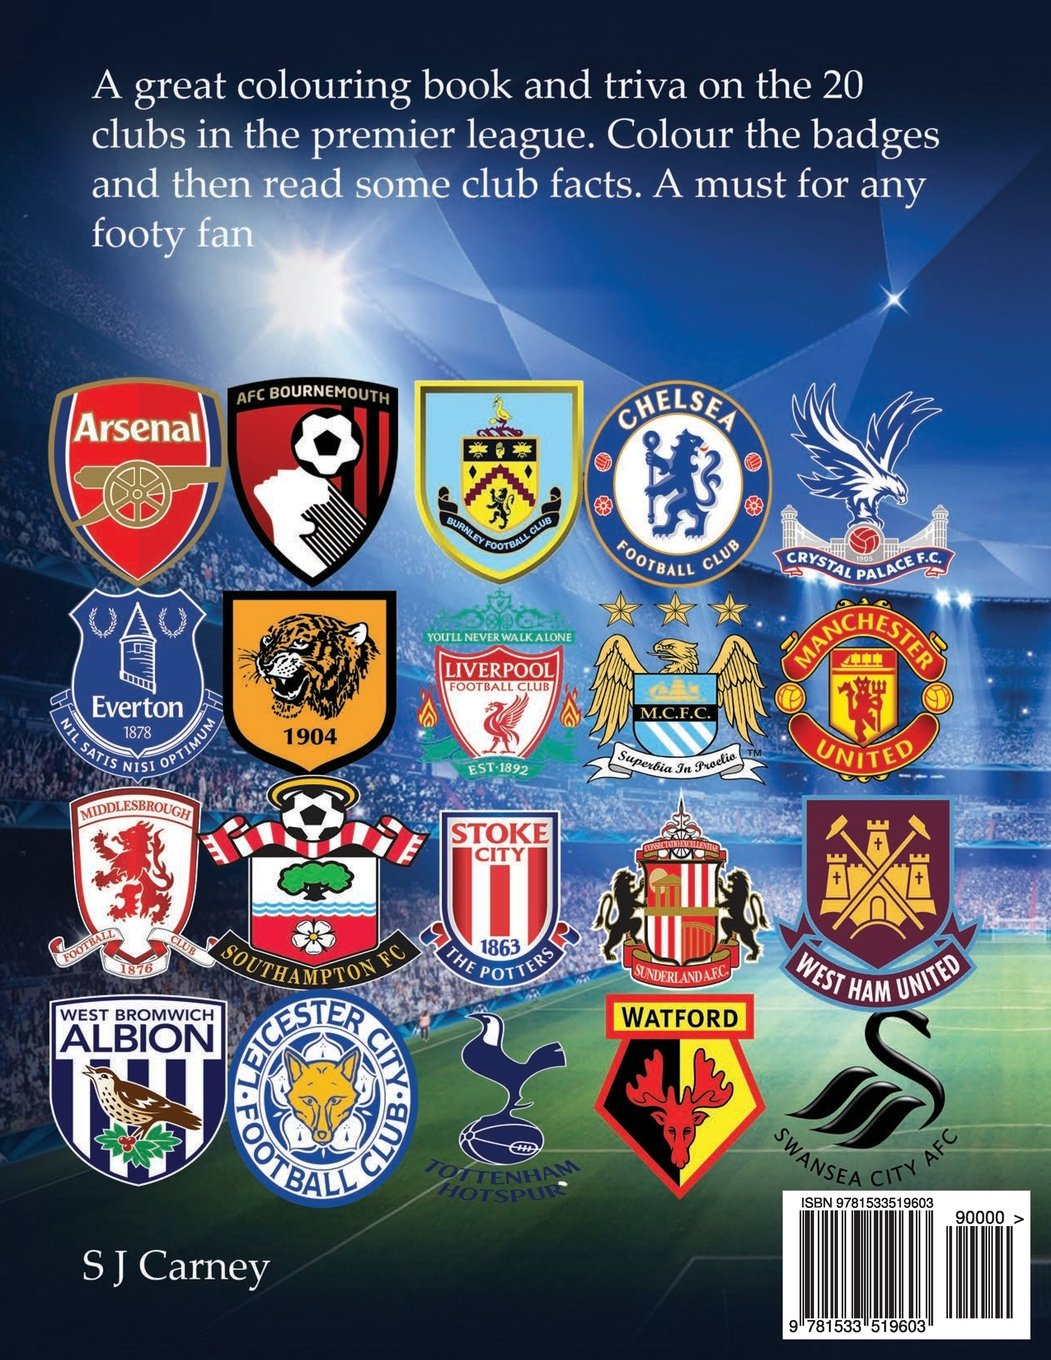 Premier League Club Badges 2016/17: A great colouring book and triva on the 20 clubs in the premier league. Colour the badges and then read some club facts. A must have for any footy fan